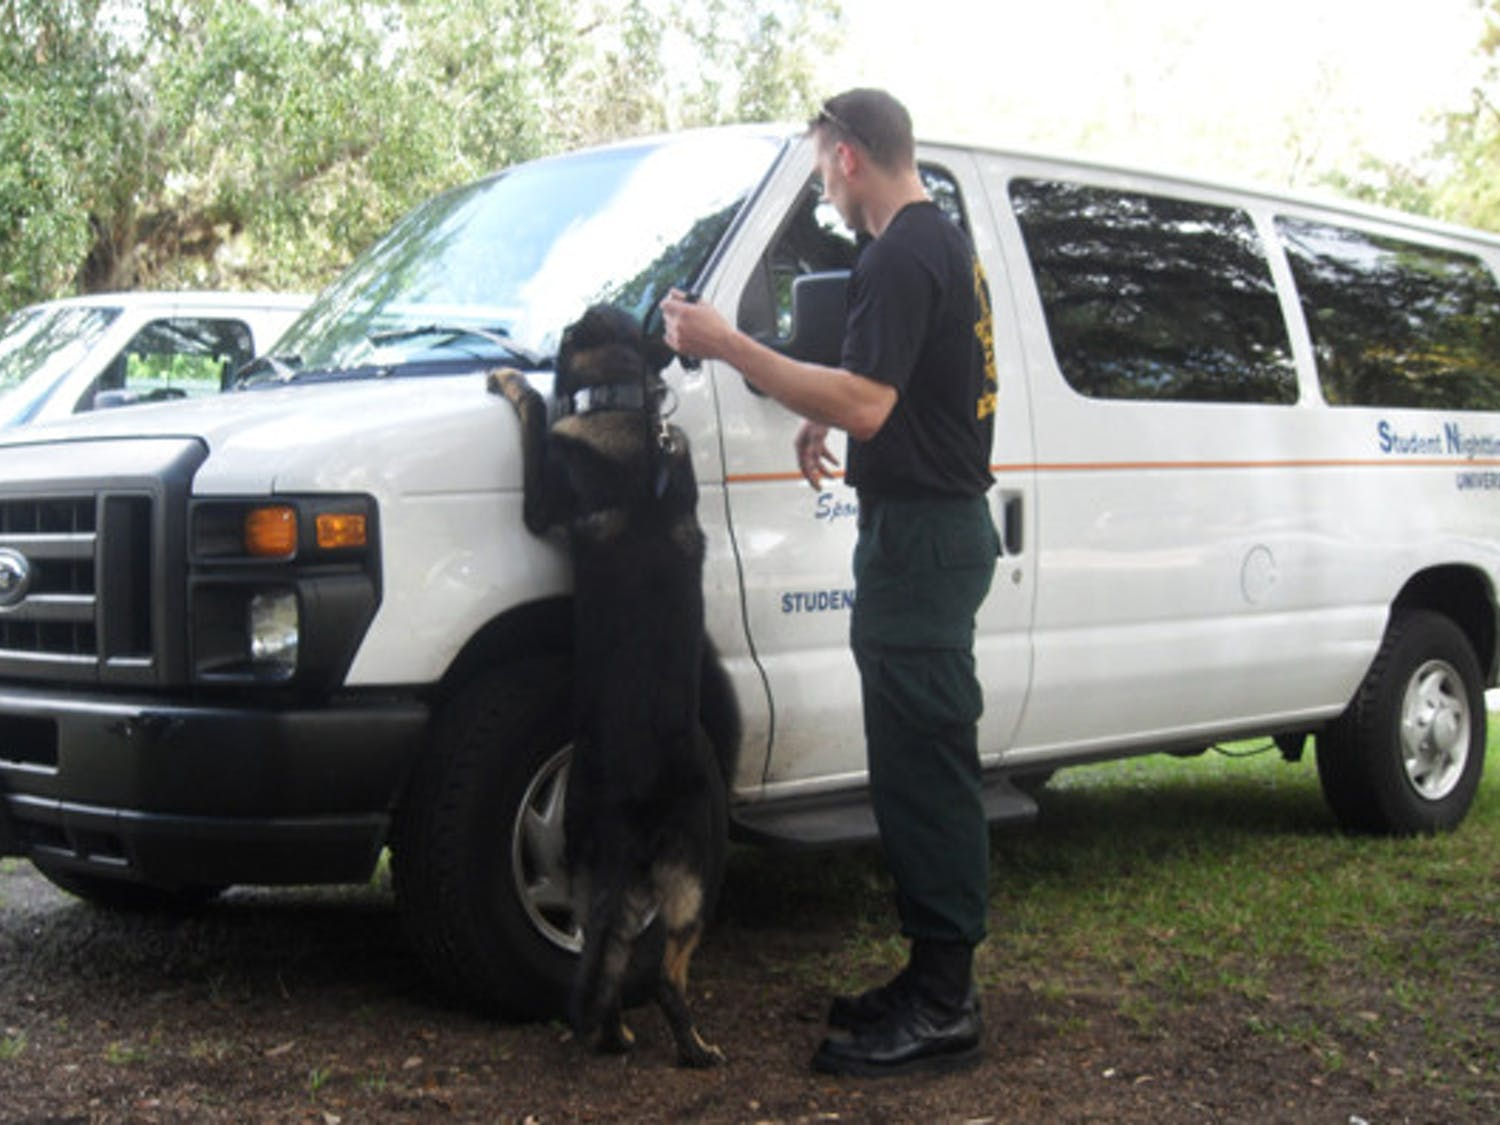 A German shepherd police dog, Apollo, is led by Marion County Sheriff's Office Deputy Greg Combs Friday, sniffing out narcotics for his yearly certification requirements.